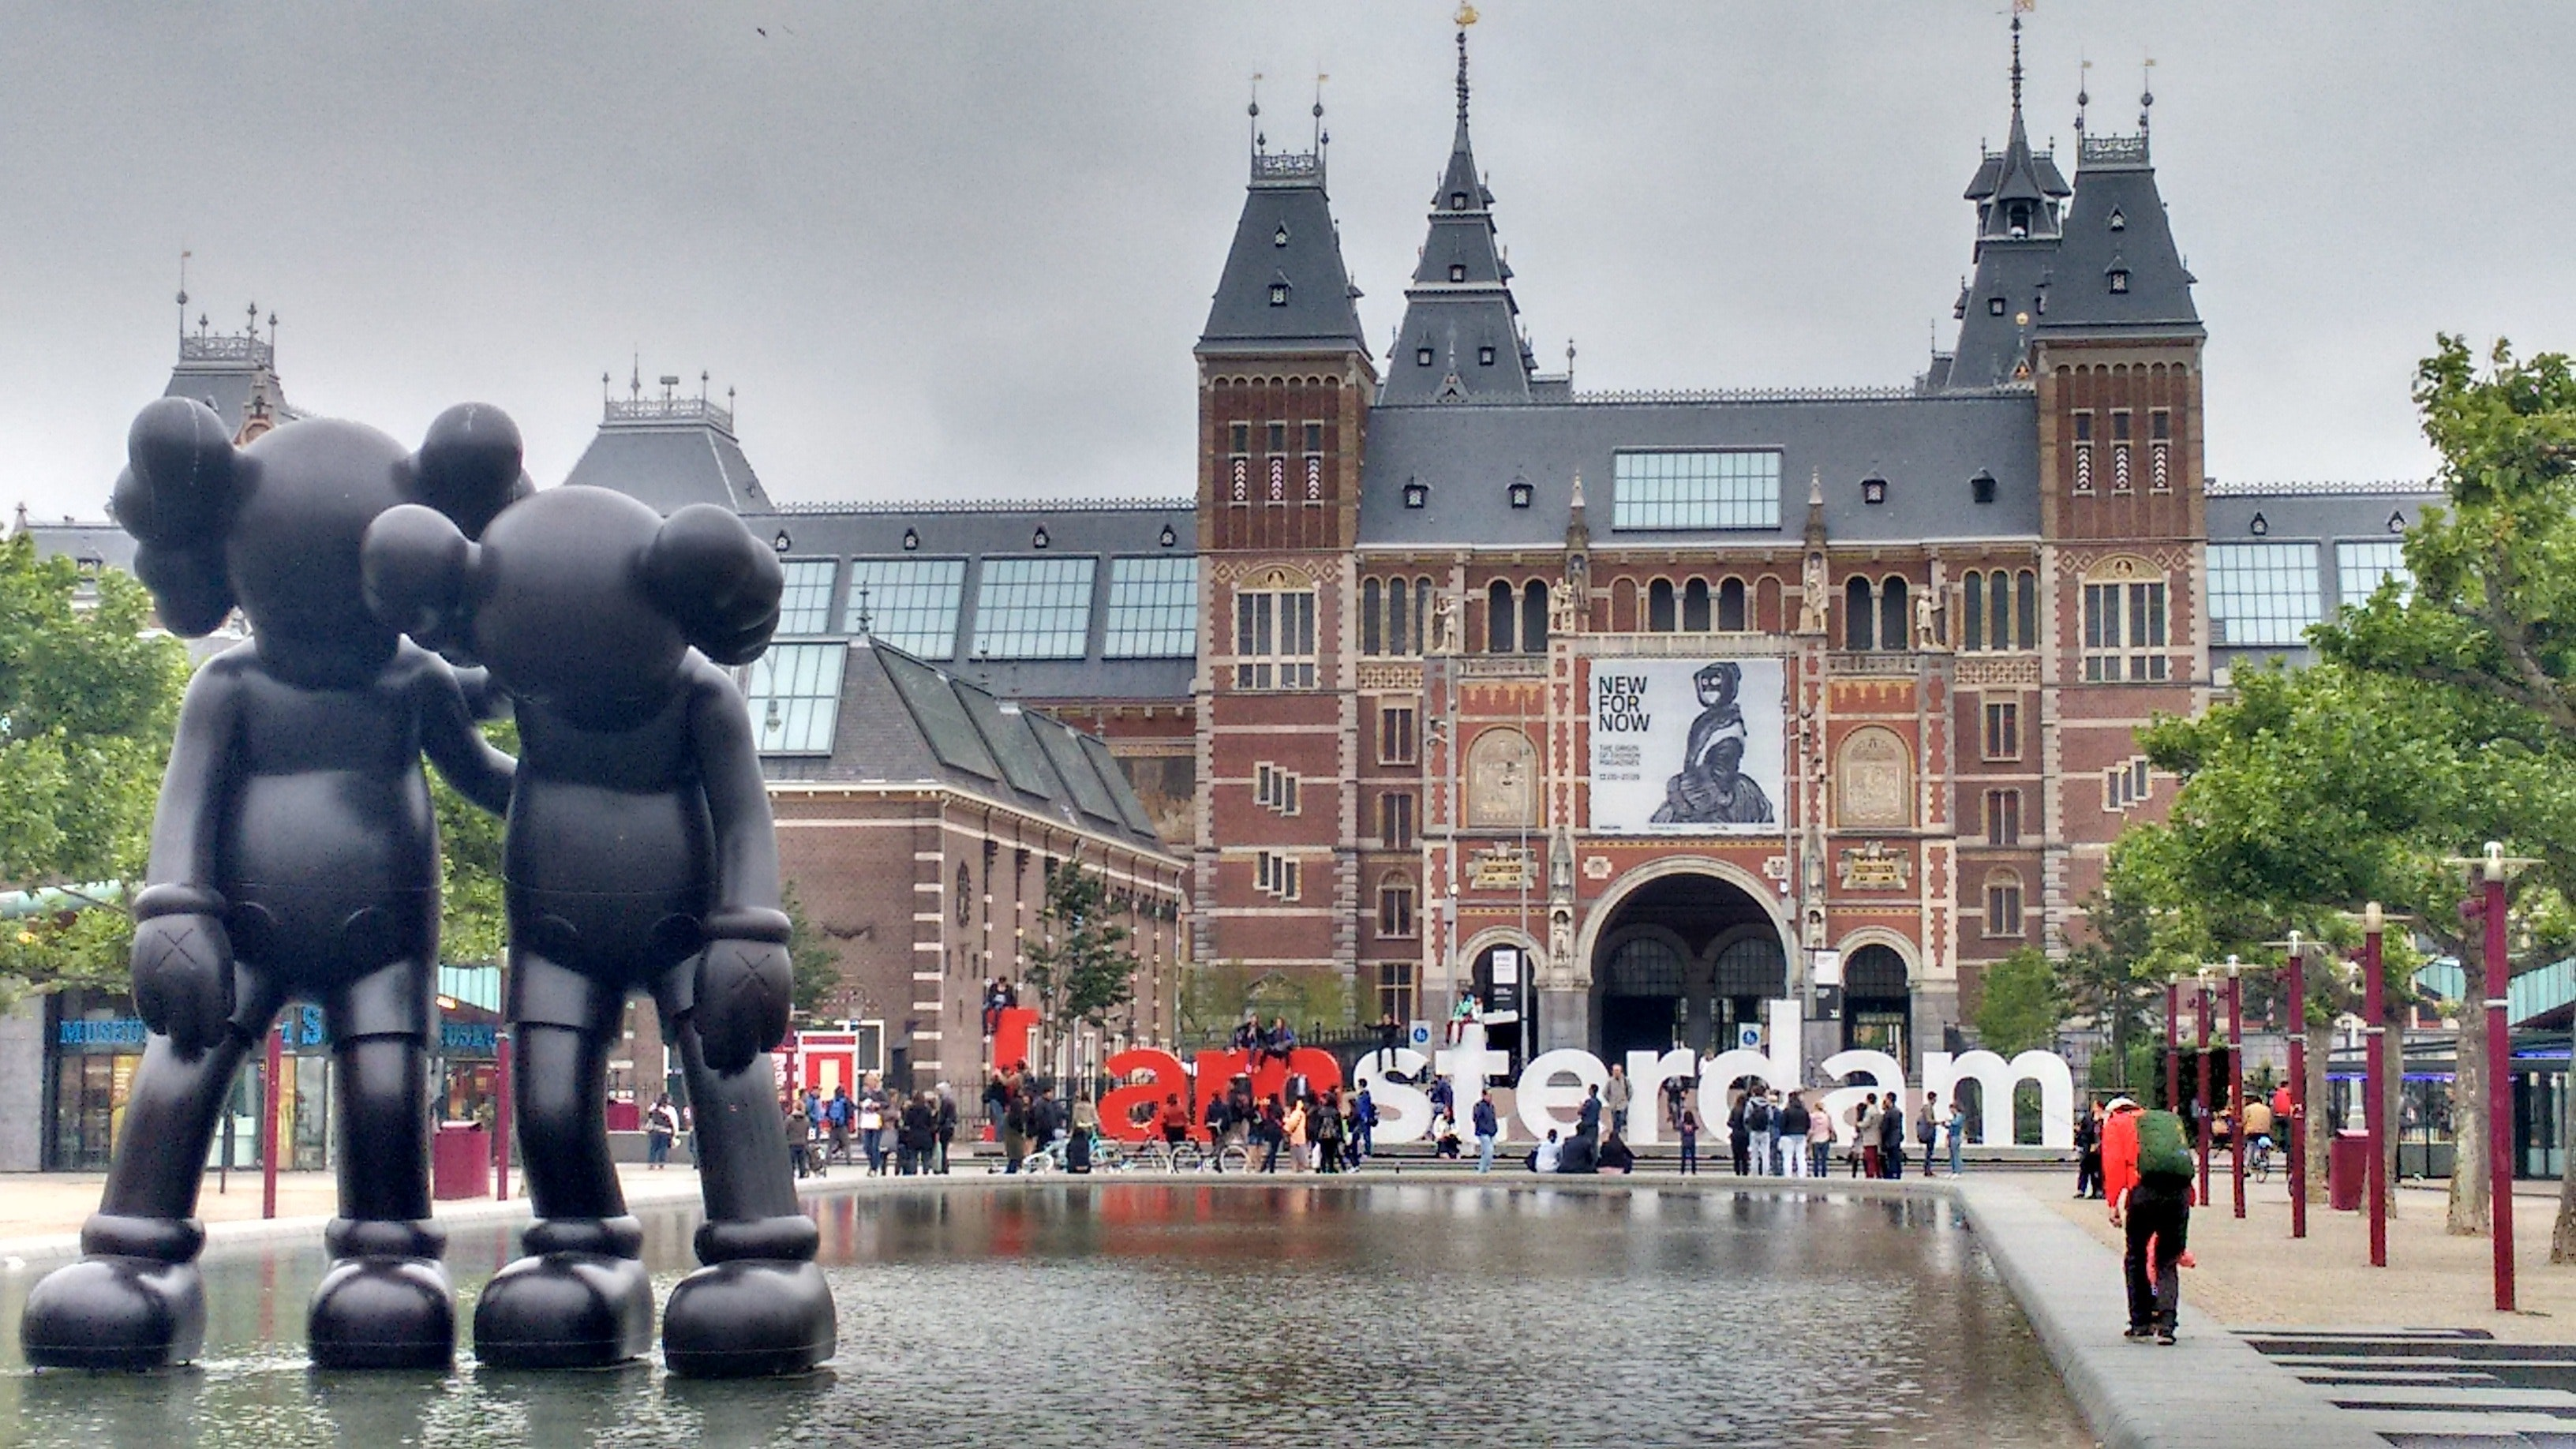 15 Weird, Random & Interesting Facts About Amsterdam